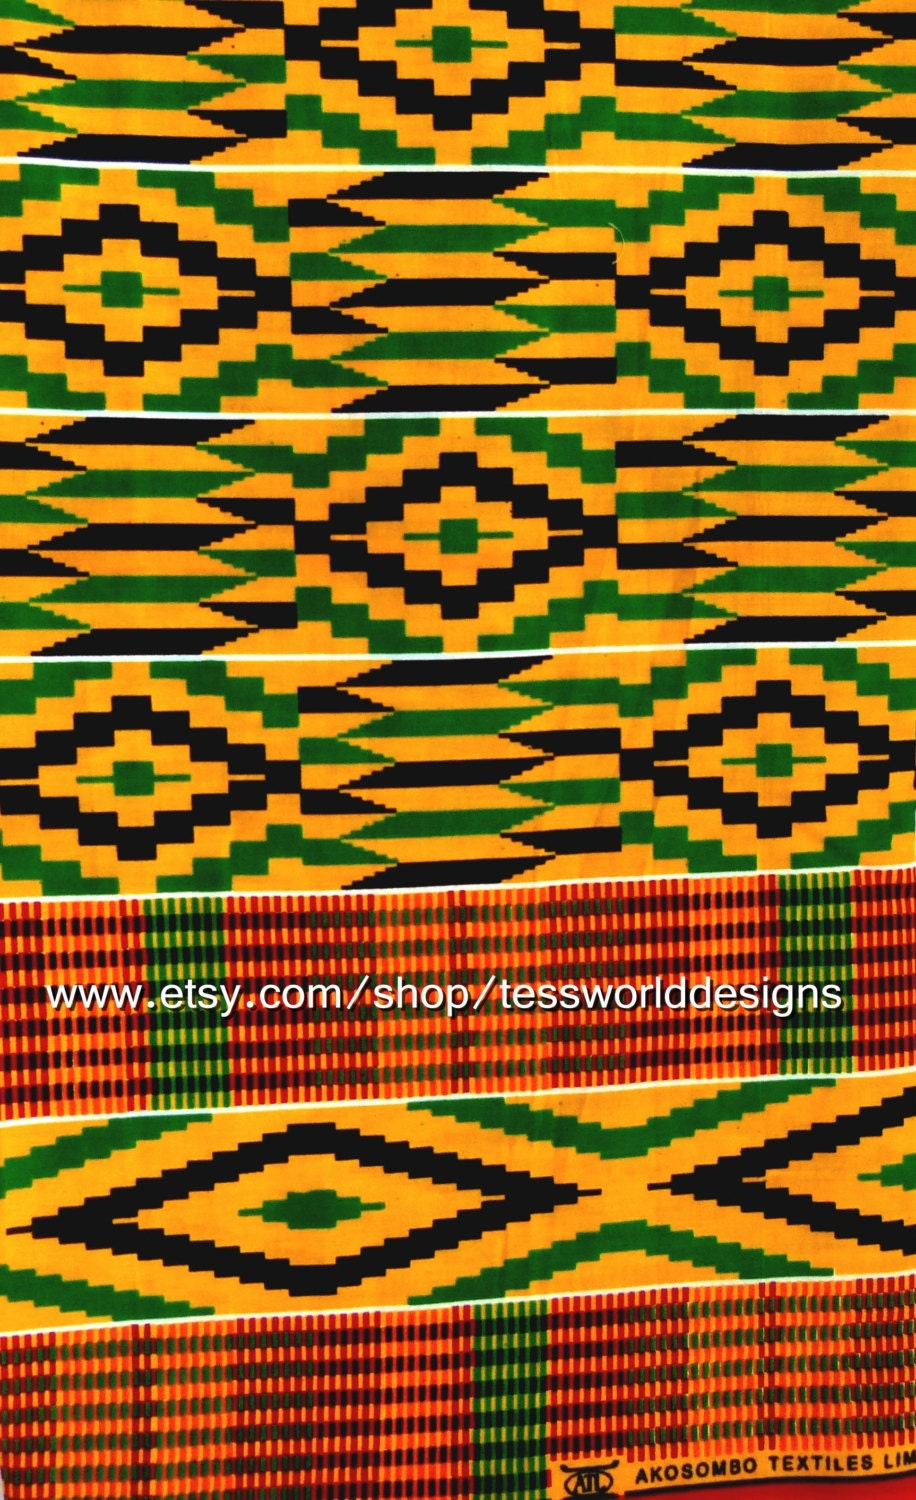 Fabric Authentic Cotton Kente Cloth African Fabric African